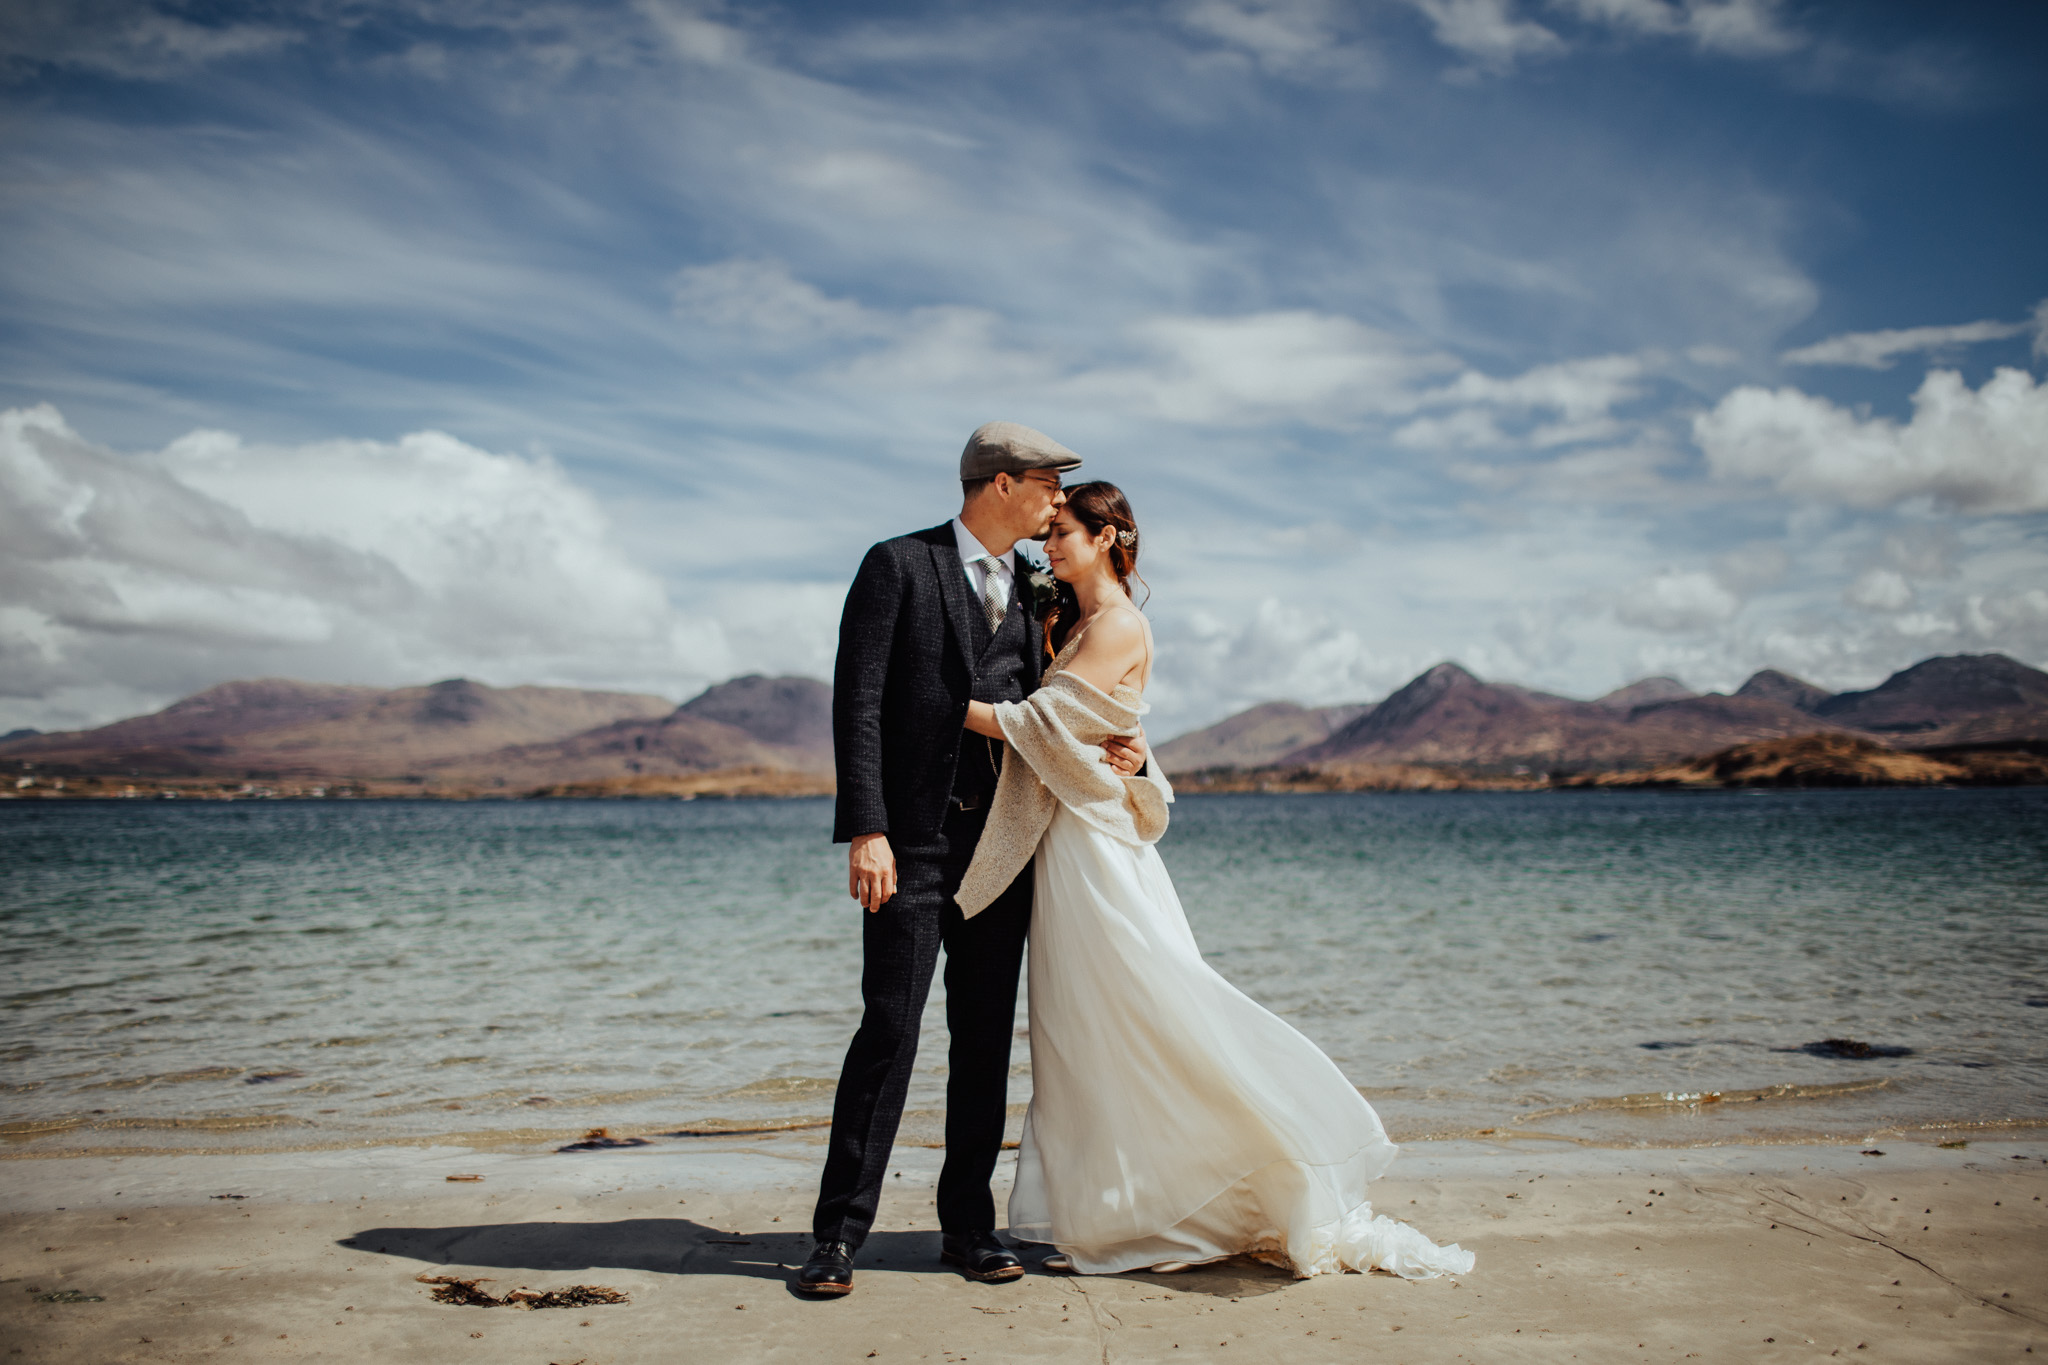 A couple posing for their Wedding Photography on the beach in Connemara